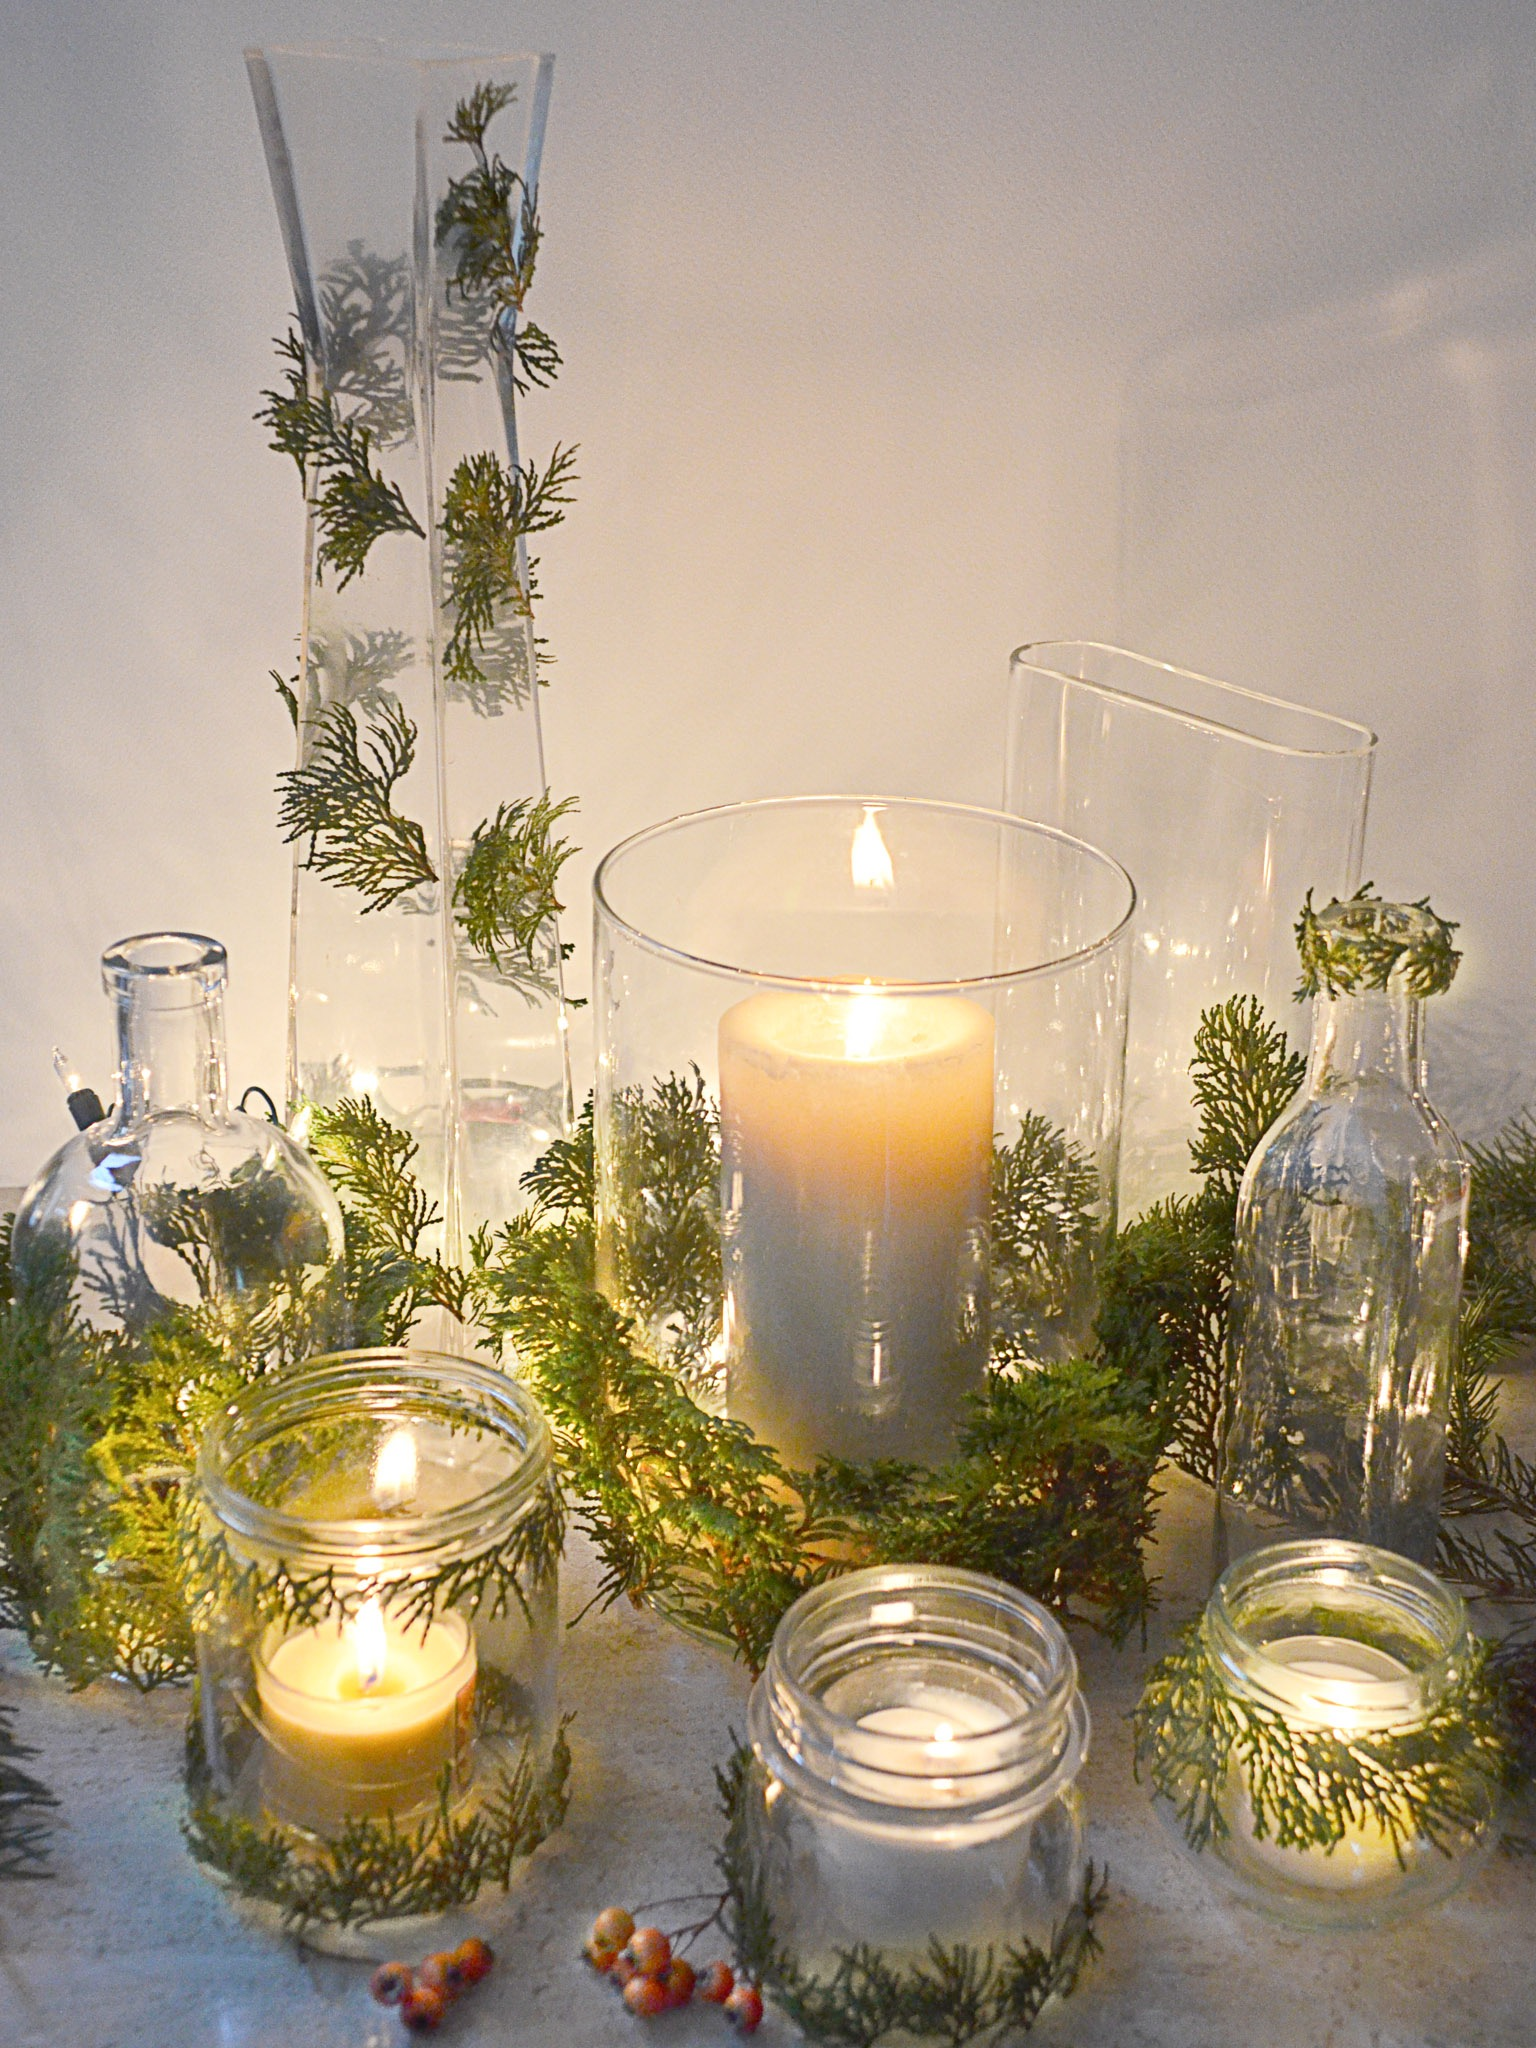 Romantic candle centerpiece ideas centerpieces